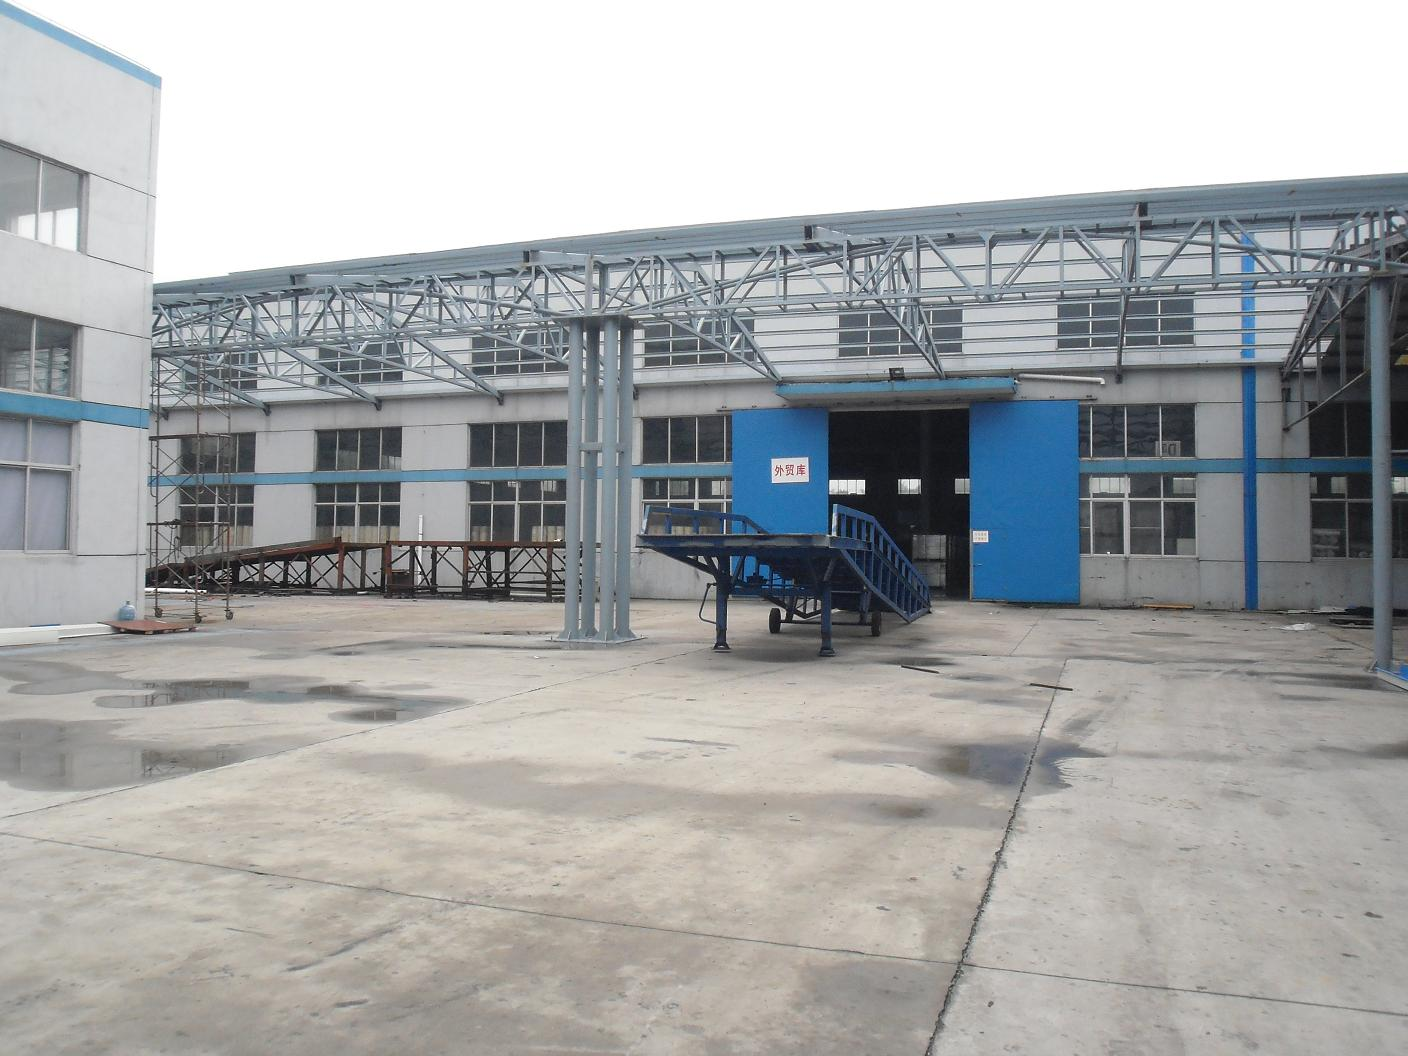 Dongjia Loading Container Platform